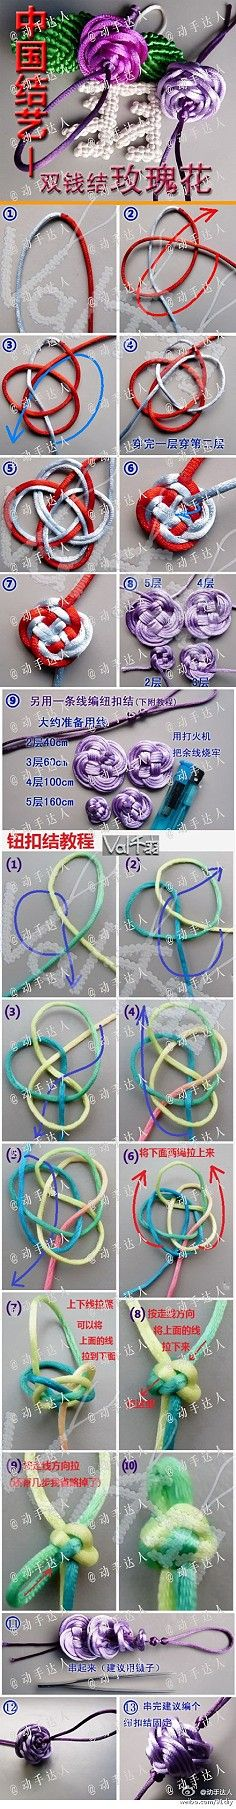 [Chinese knot art images from the Soviet Union _ ...... children share